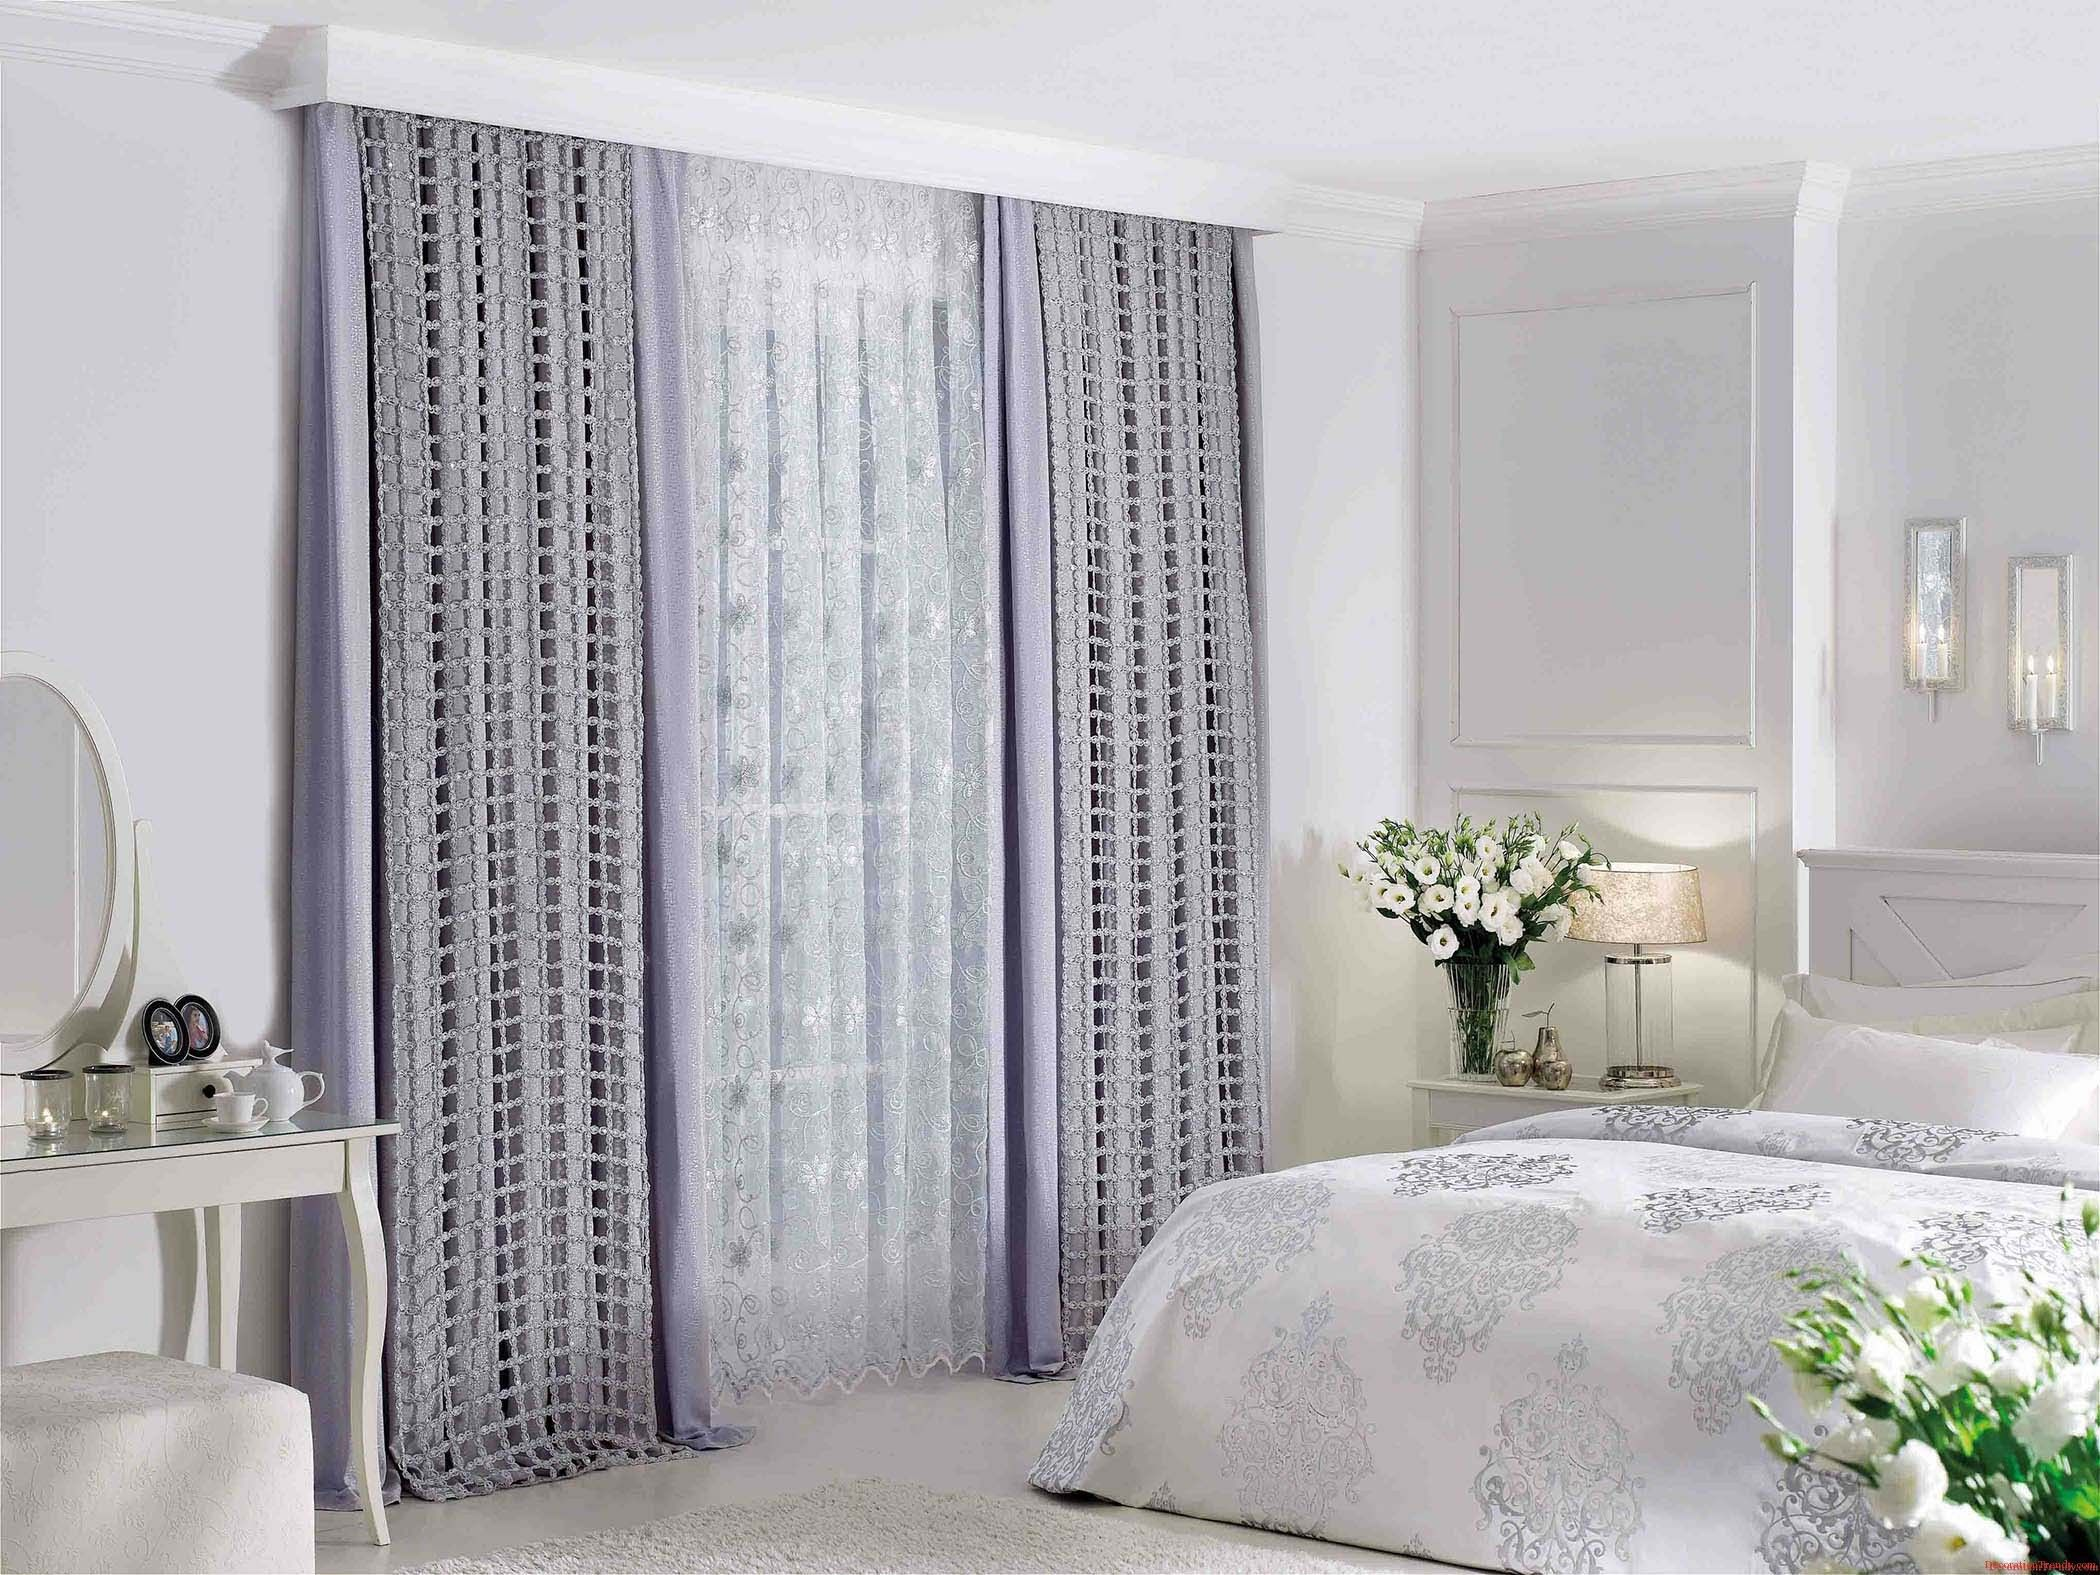 latest curtain designs | New living room curtains | Stoffen in het ...